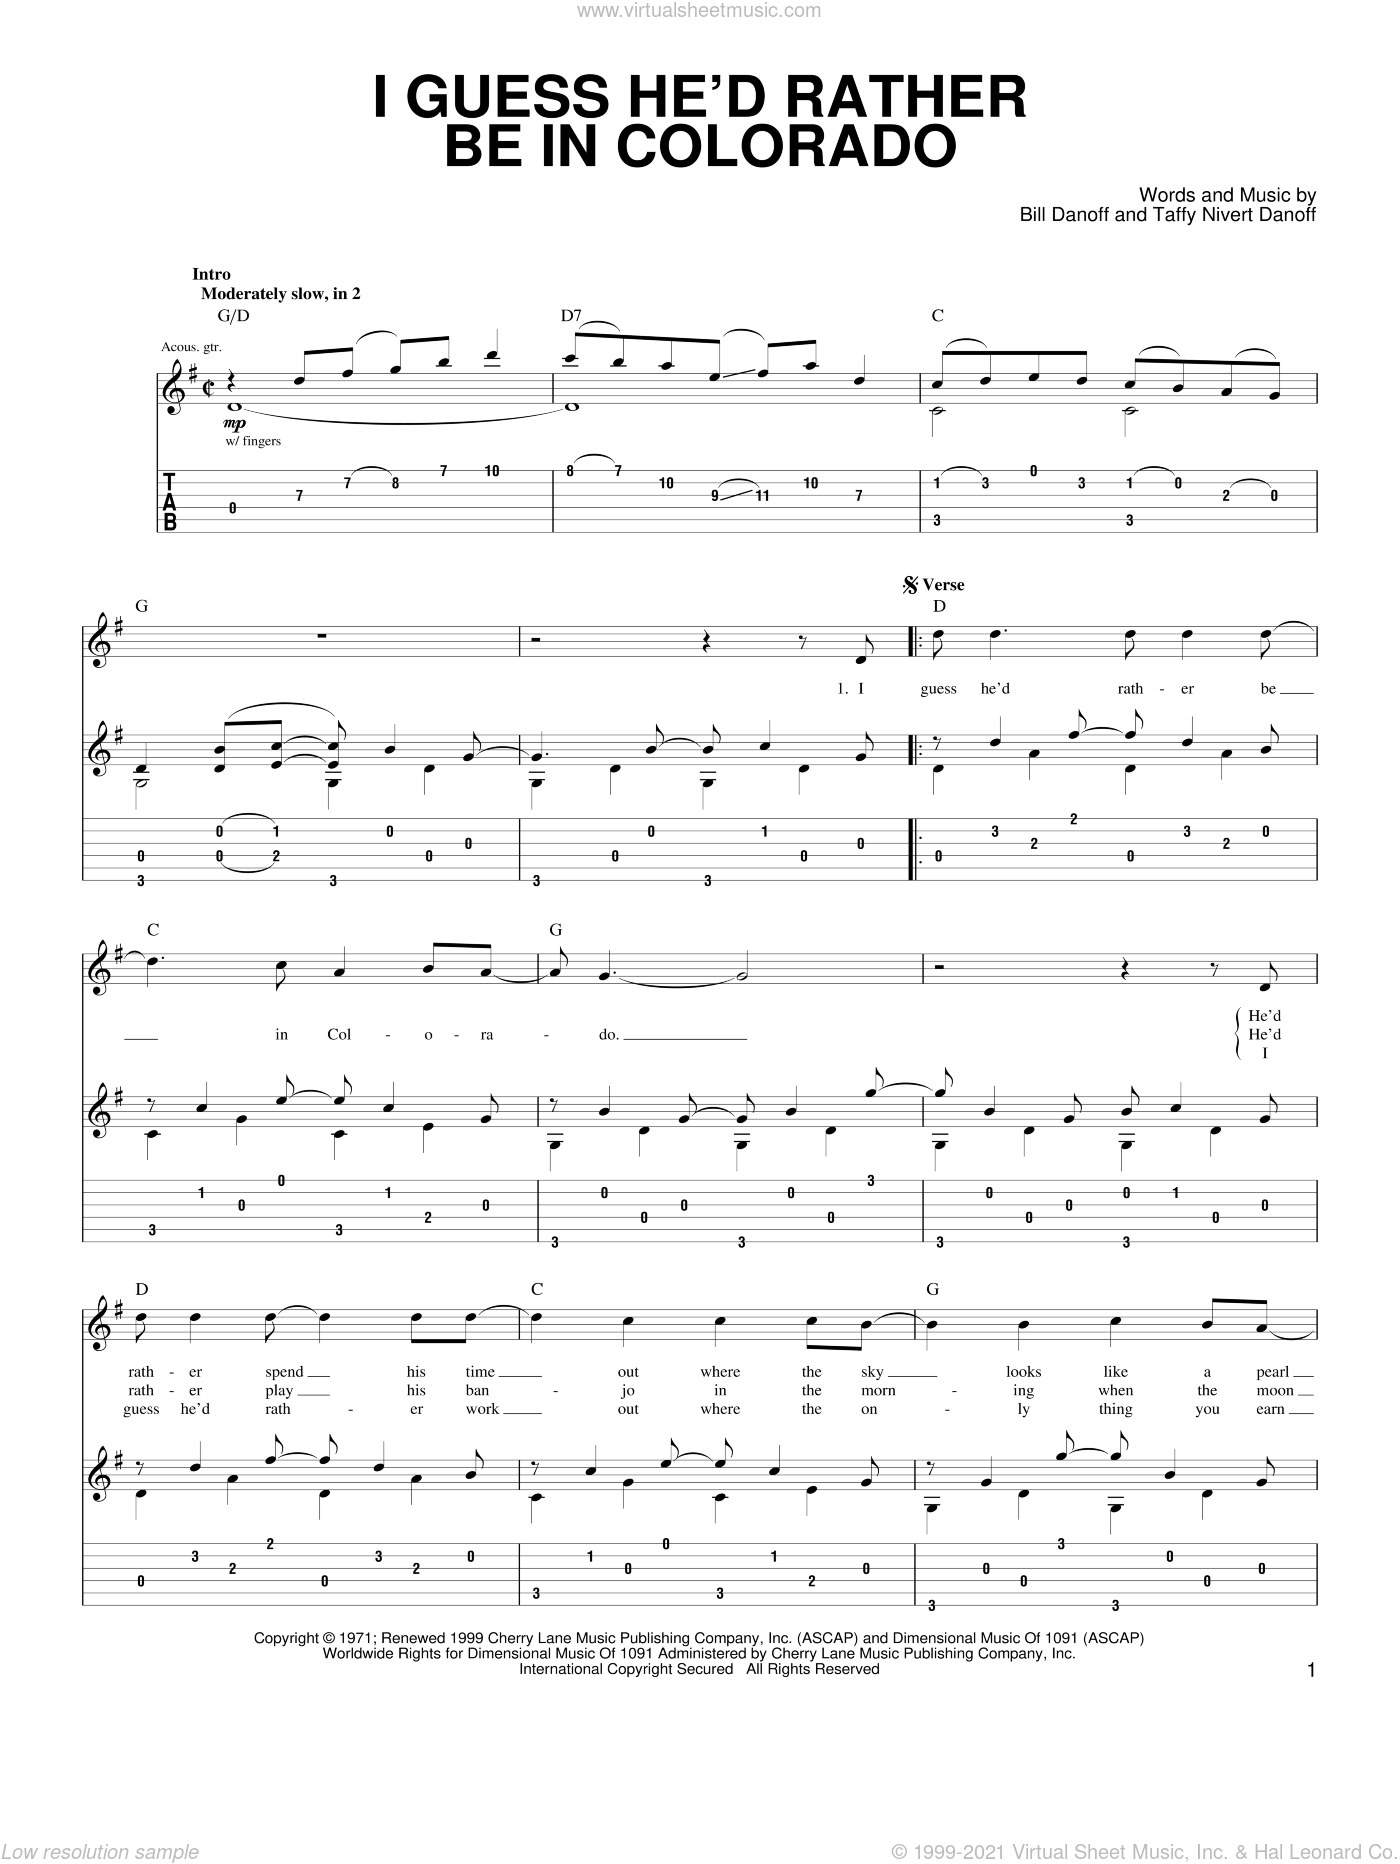 I Guess He'd Rather Be In Colorado sheet music for guitar (tablature) by Taffy Nivert Danoff